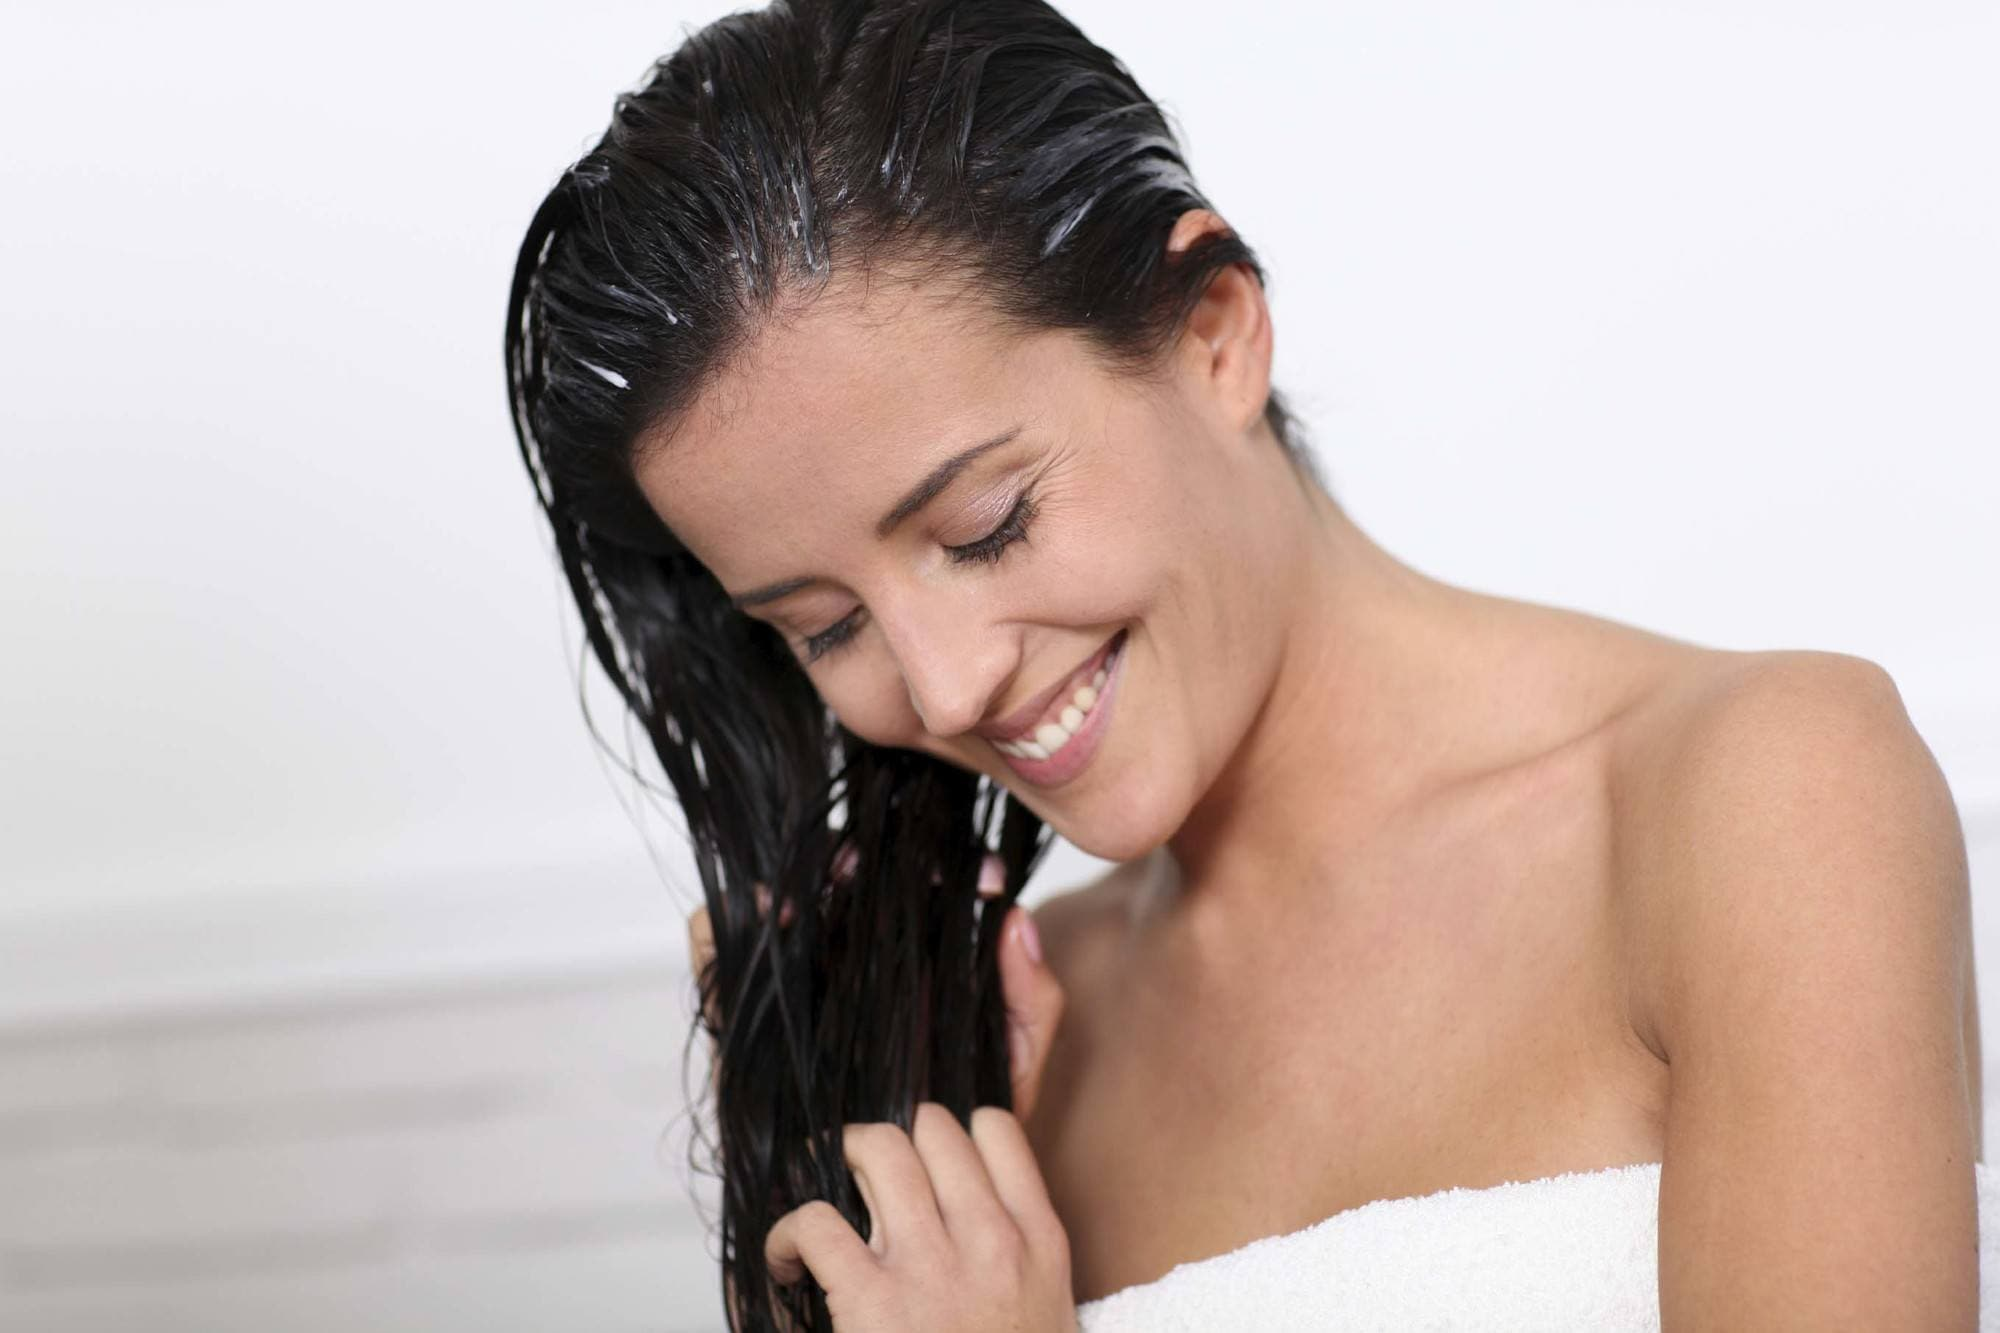 model with brown hair applying conditioning product to lengths of hair